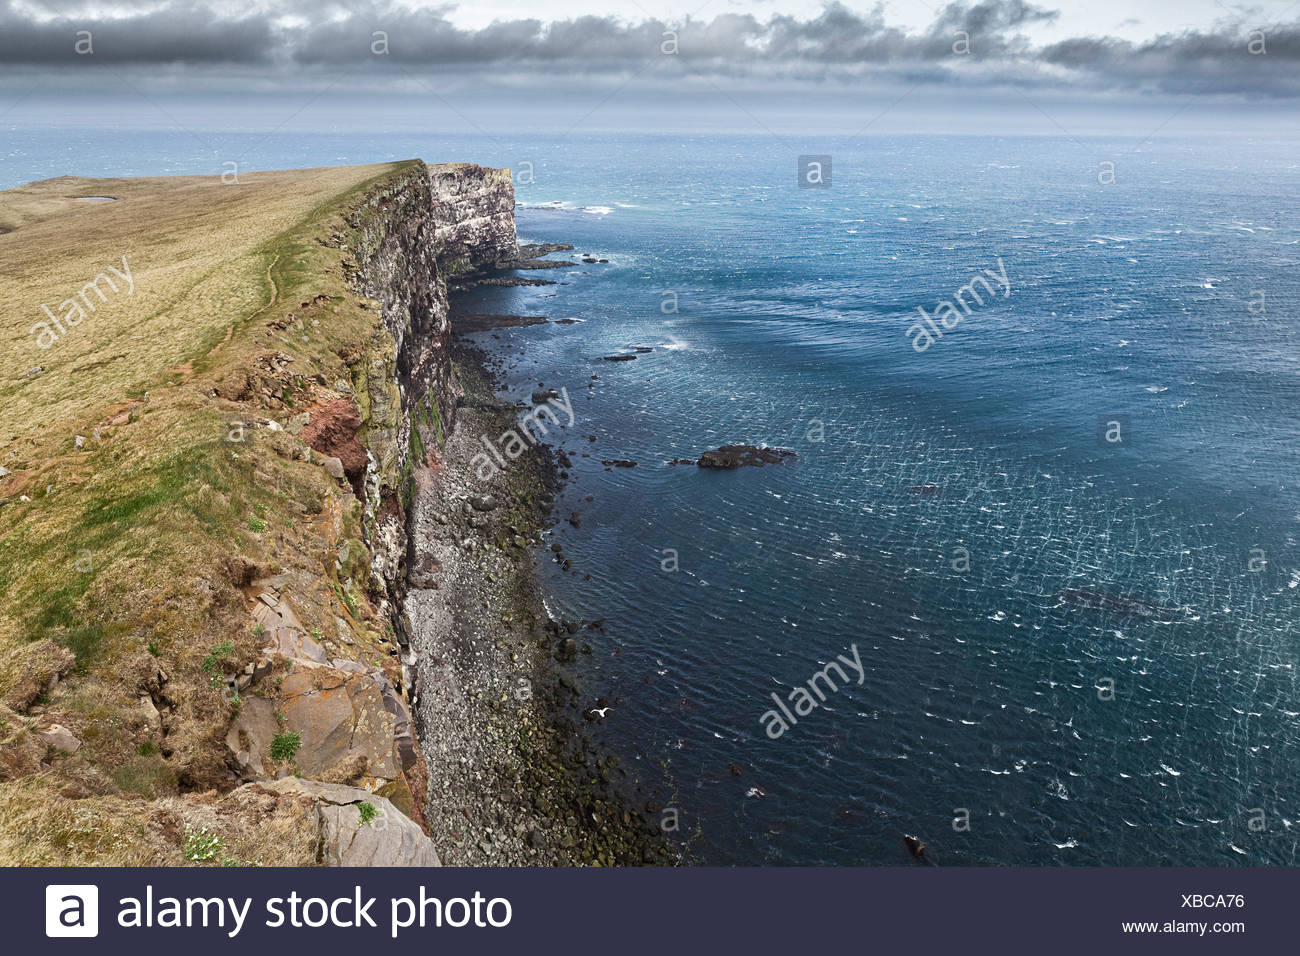 Cliffs and sea on the coast of Látrabjarg, Lautrabag, famous bird rocks at Cape Bjargtangar, the westernmost point of Iceland - Stock Image